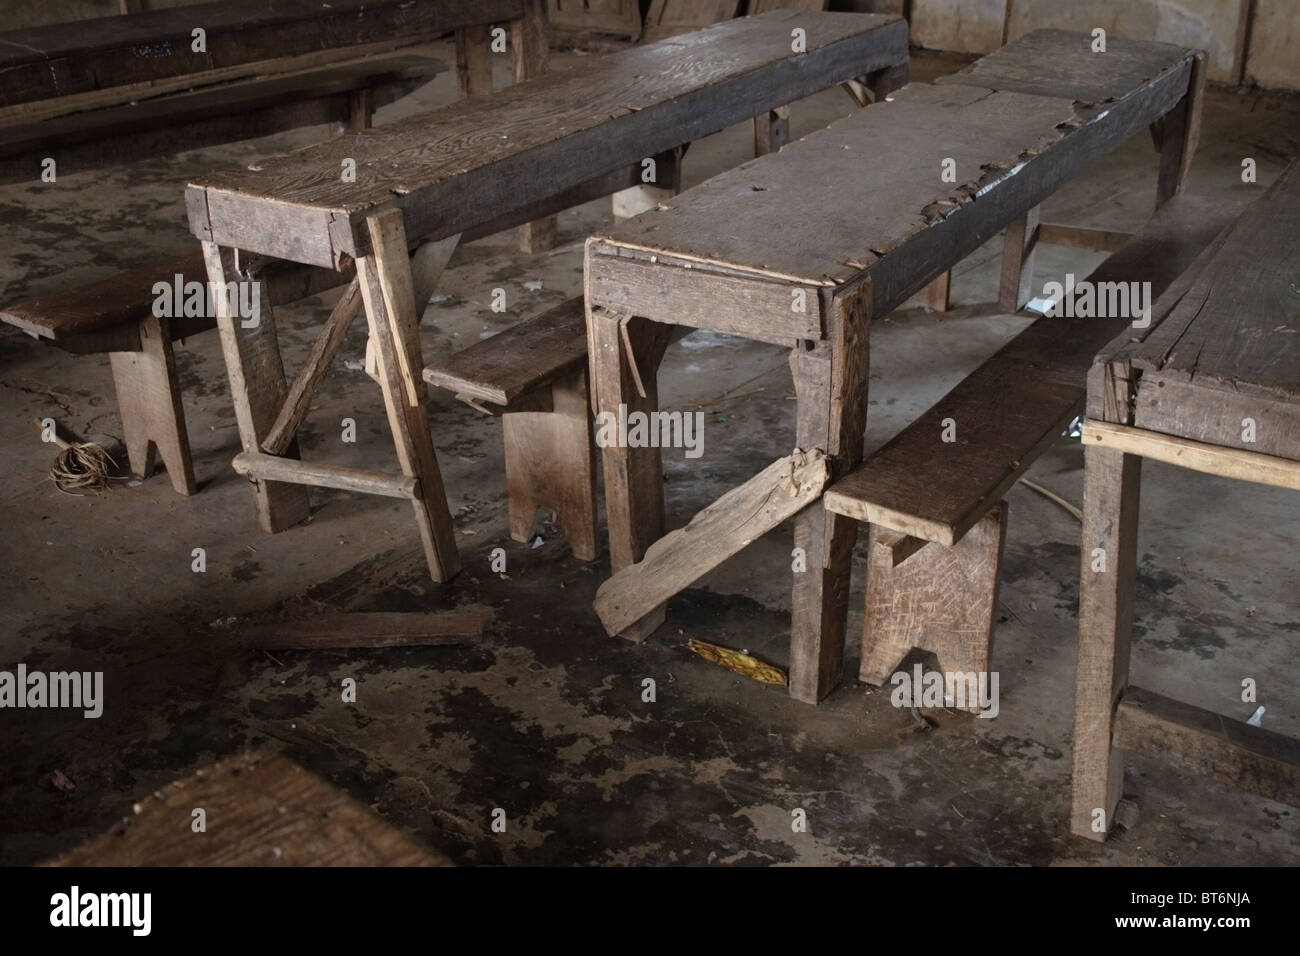 Old Broken Wooden Tables And Benches In Poor Condition Serve Students At A Primary School